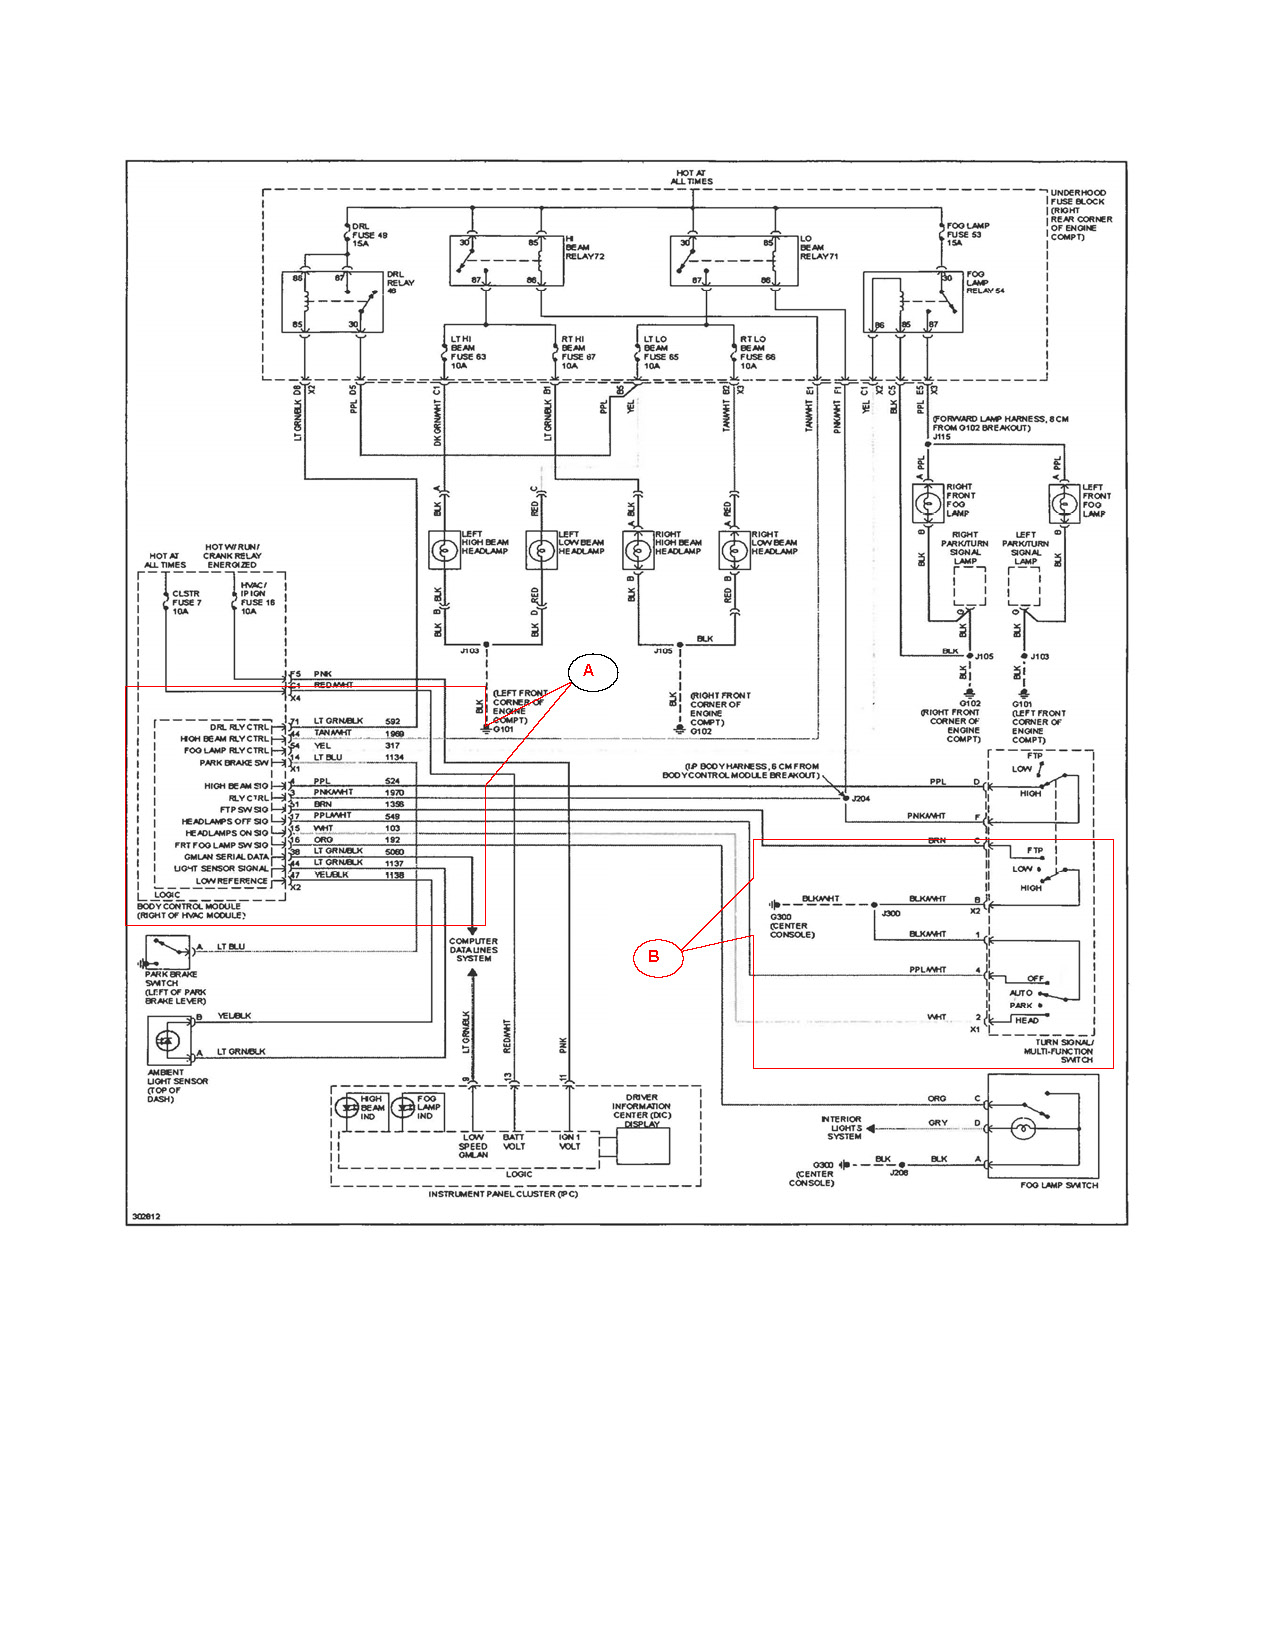 1998 Saturn Sl Fuse Box Diagram Wiring Library Sc2 2009 Sky Schematic Diagrams Rh Ogmconsulting Co Sl2